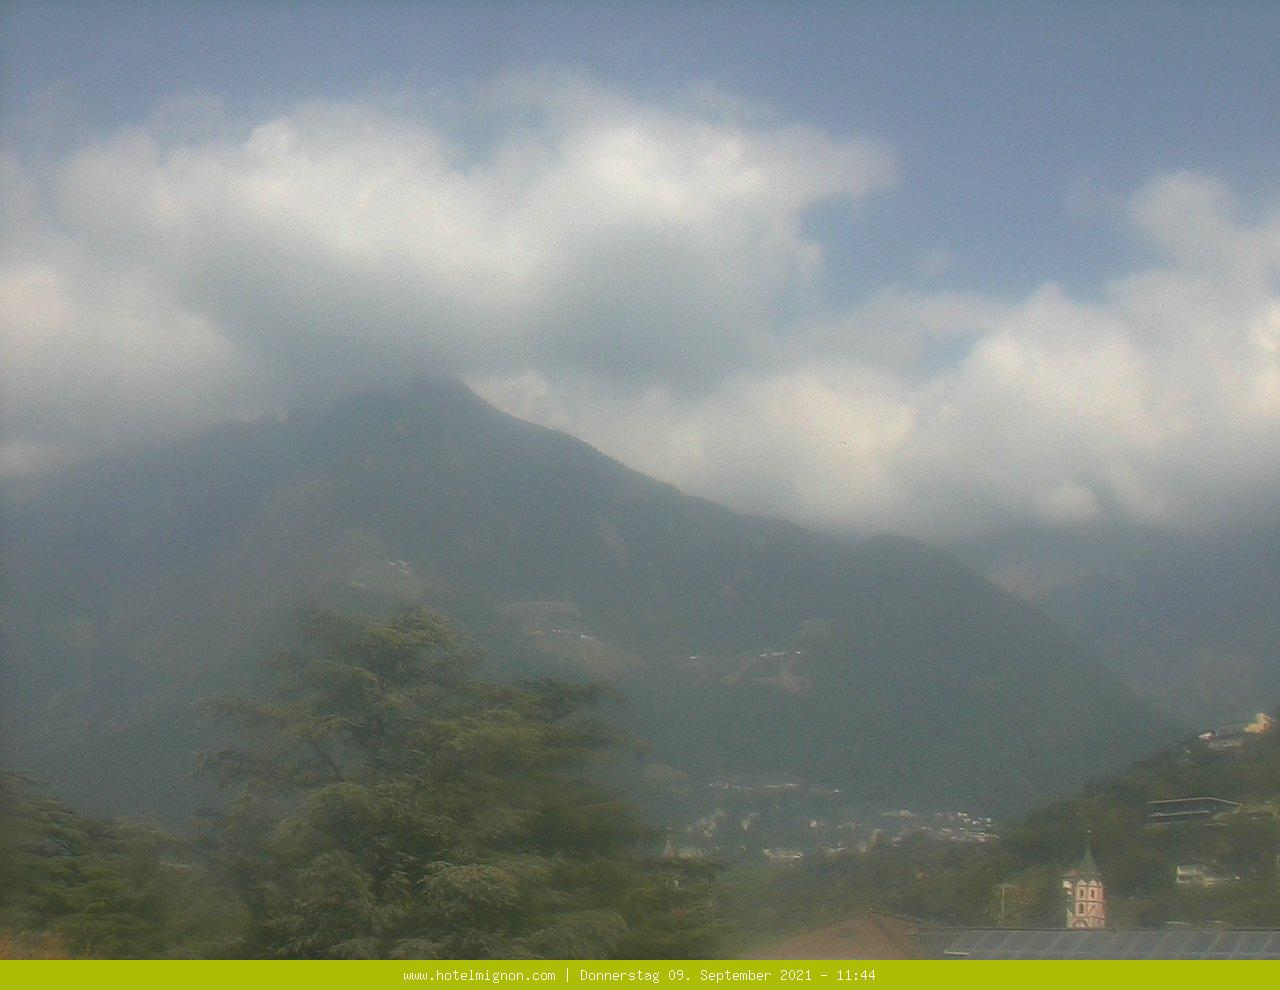 Webcam to the mountain world of Merano